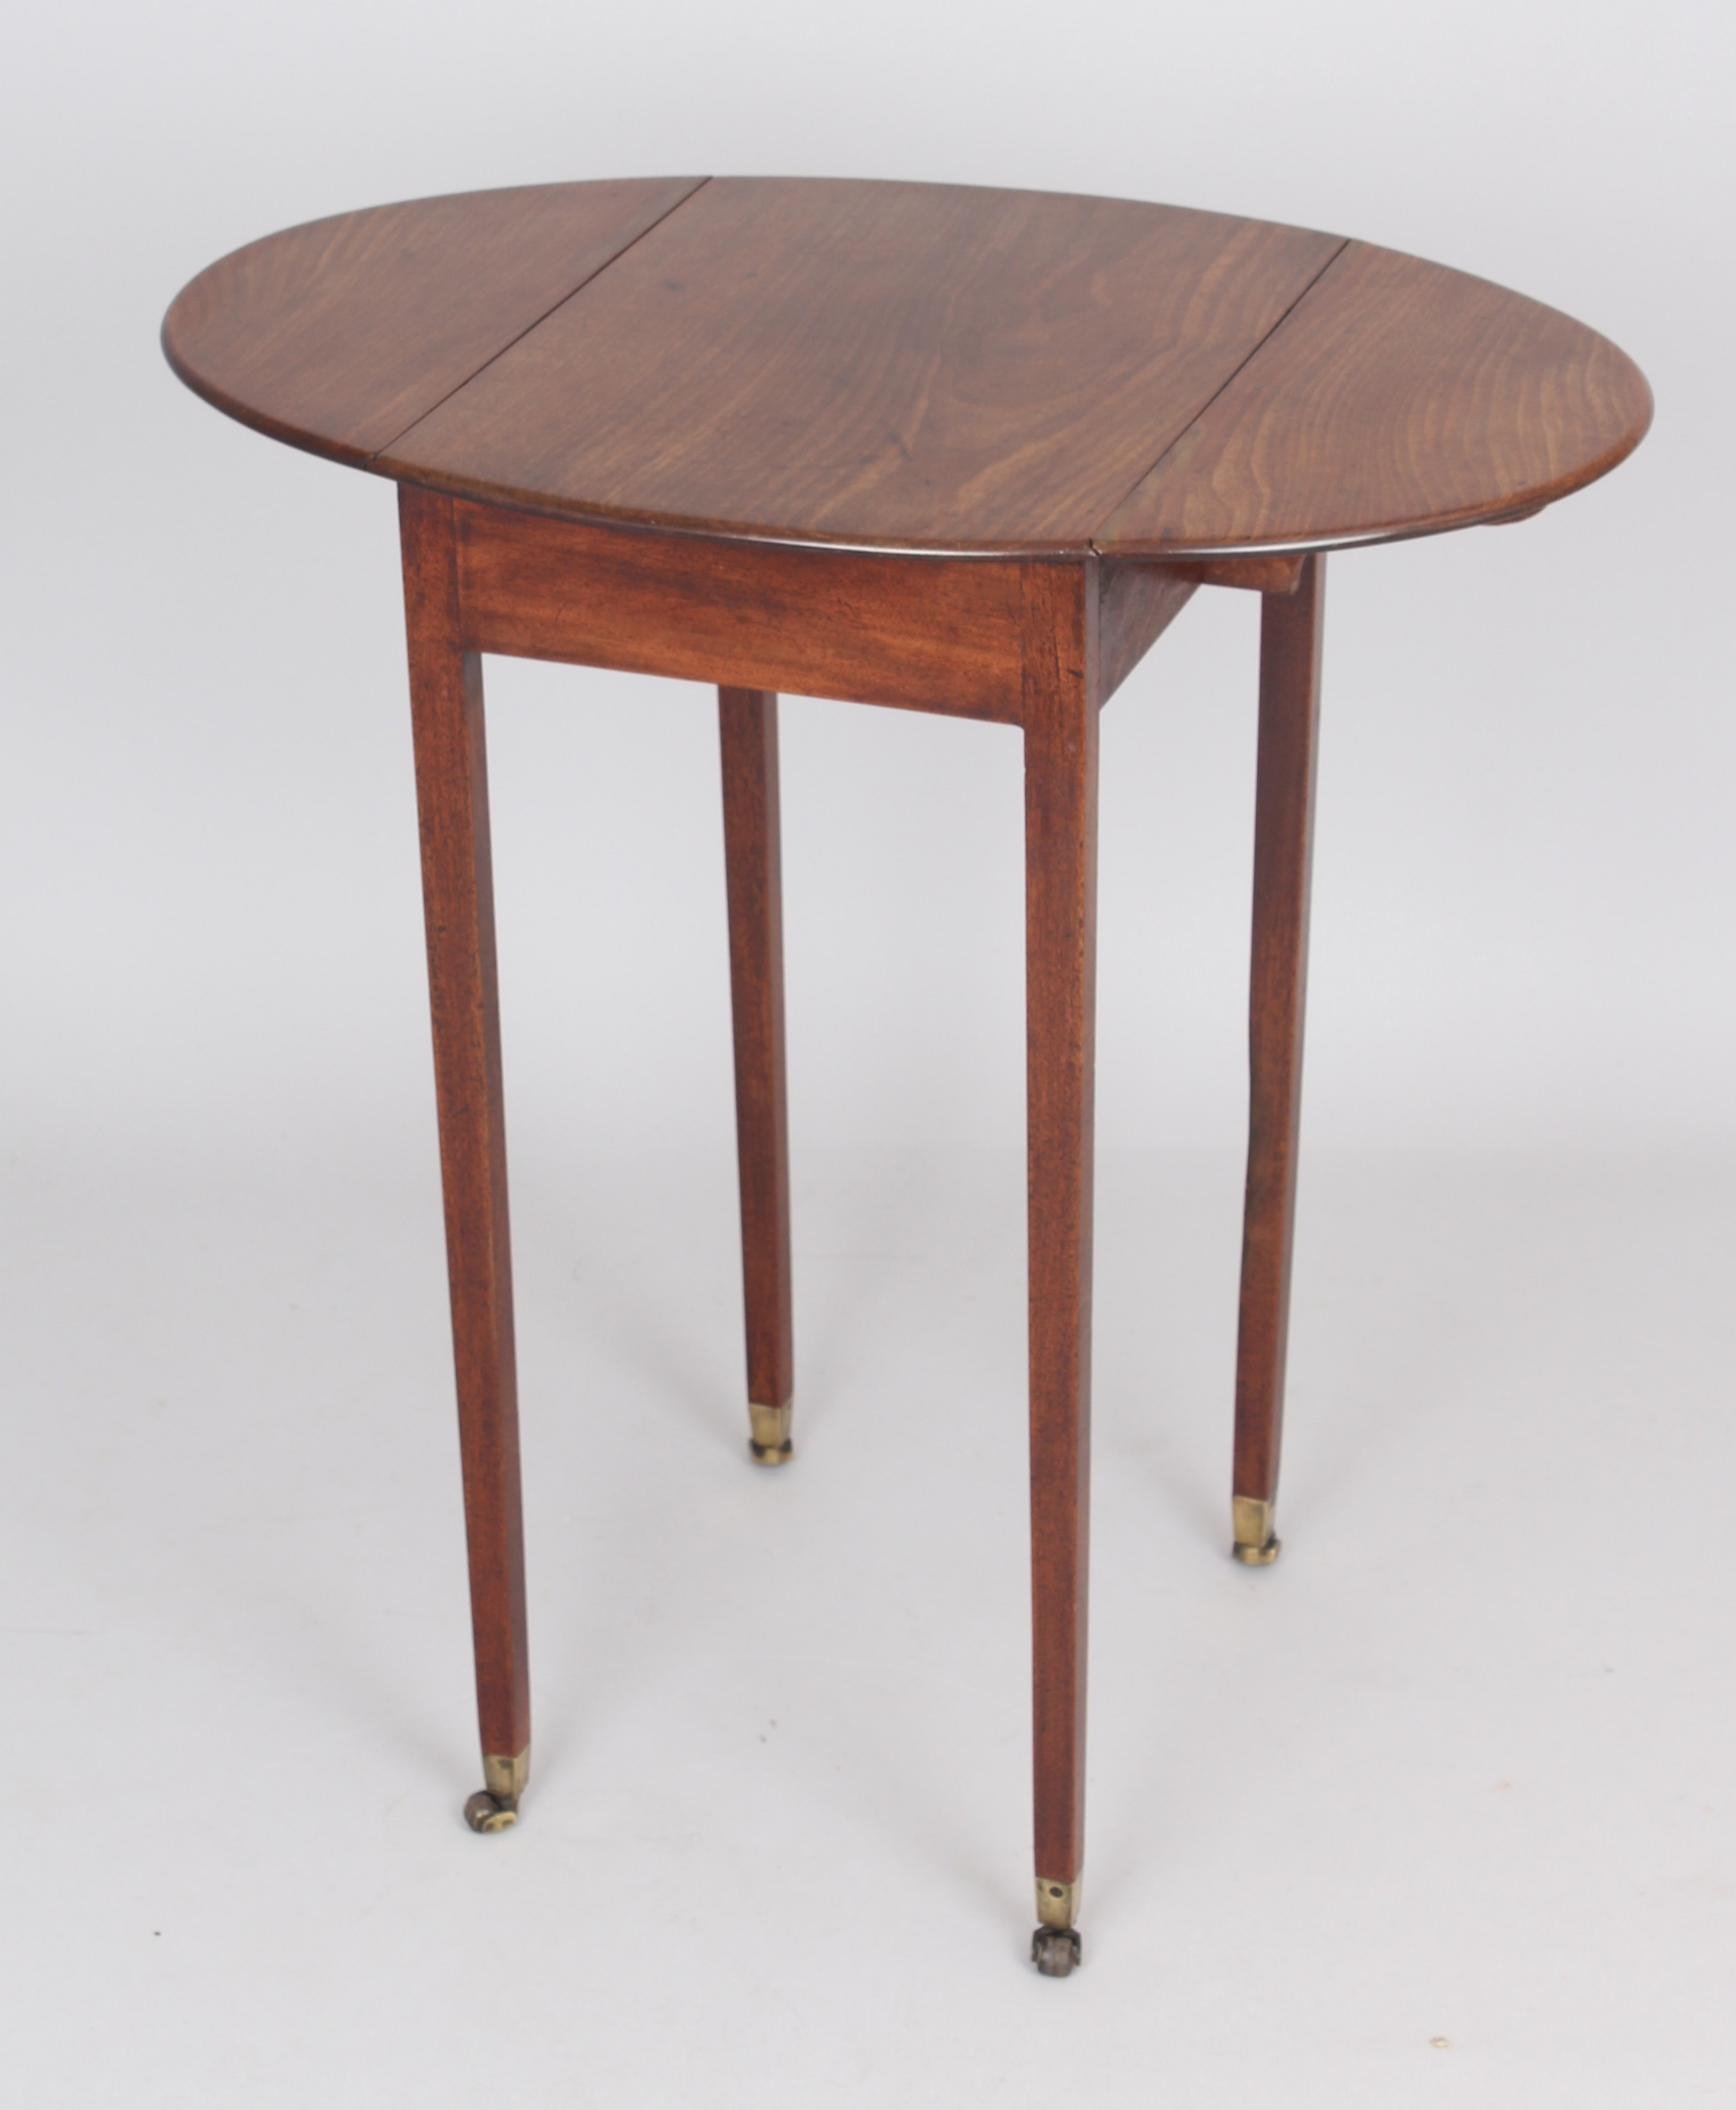 george iii period mahogany small oval pembroke table of simple design